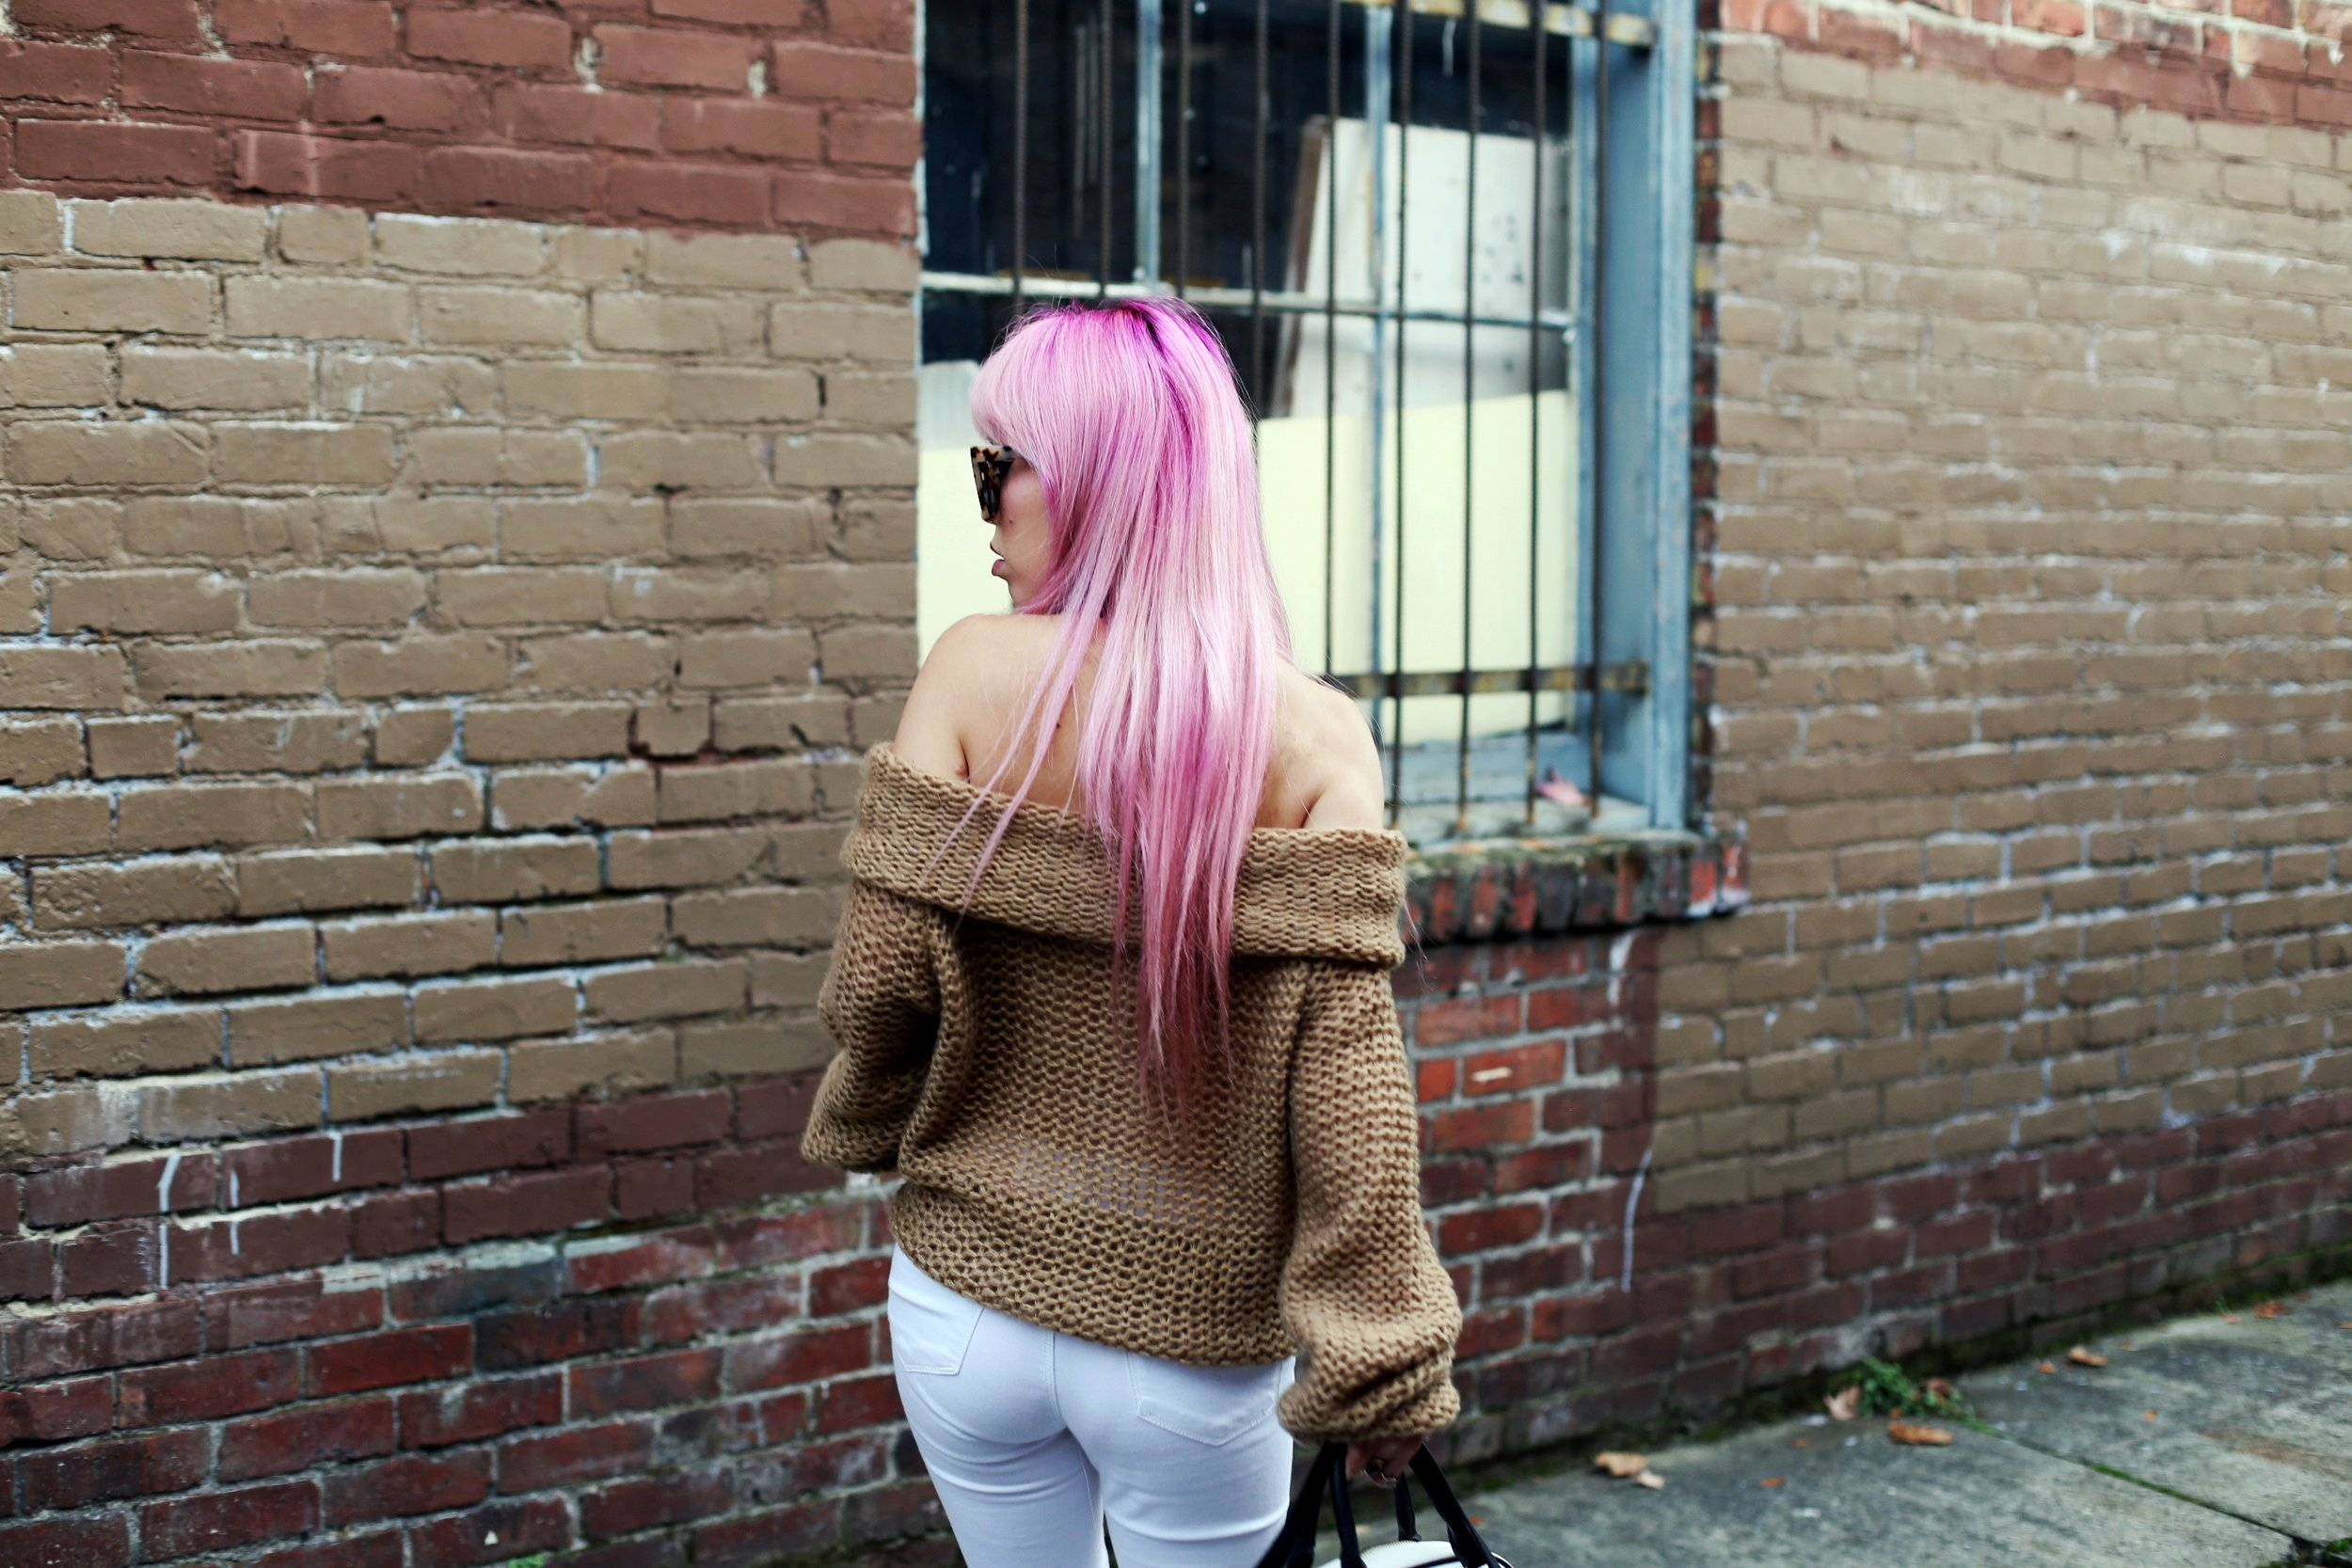 Urban Outfitters Sunglasses_Camel Off The Shoulder Sweater_TOPSHOP white jeans_ZARA Bag_ASOS Snake Skin Heels_Shop Dixi Lace Choker_Aika's Love Closet_Seattle Fashion Blogger_Japanese_Pink Hair_Colored Hair 10